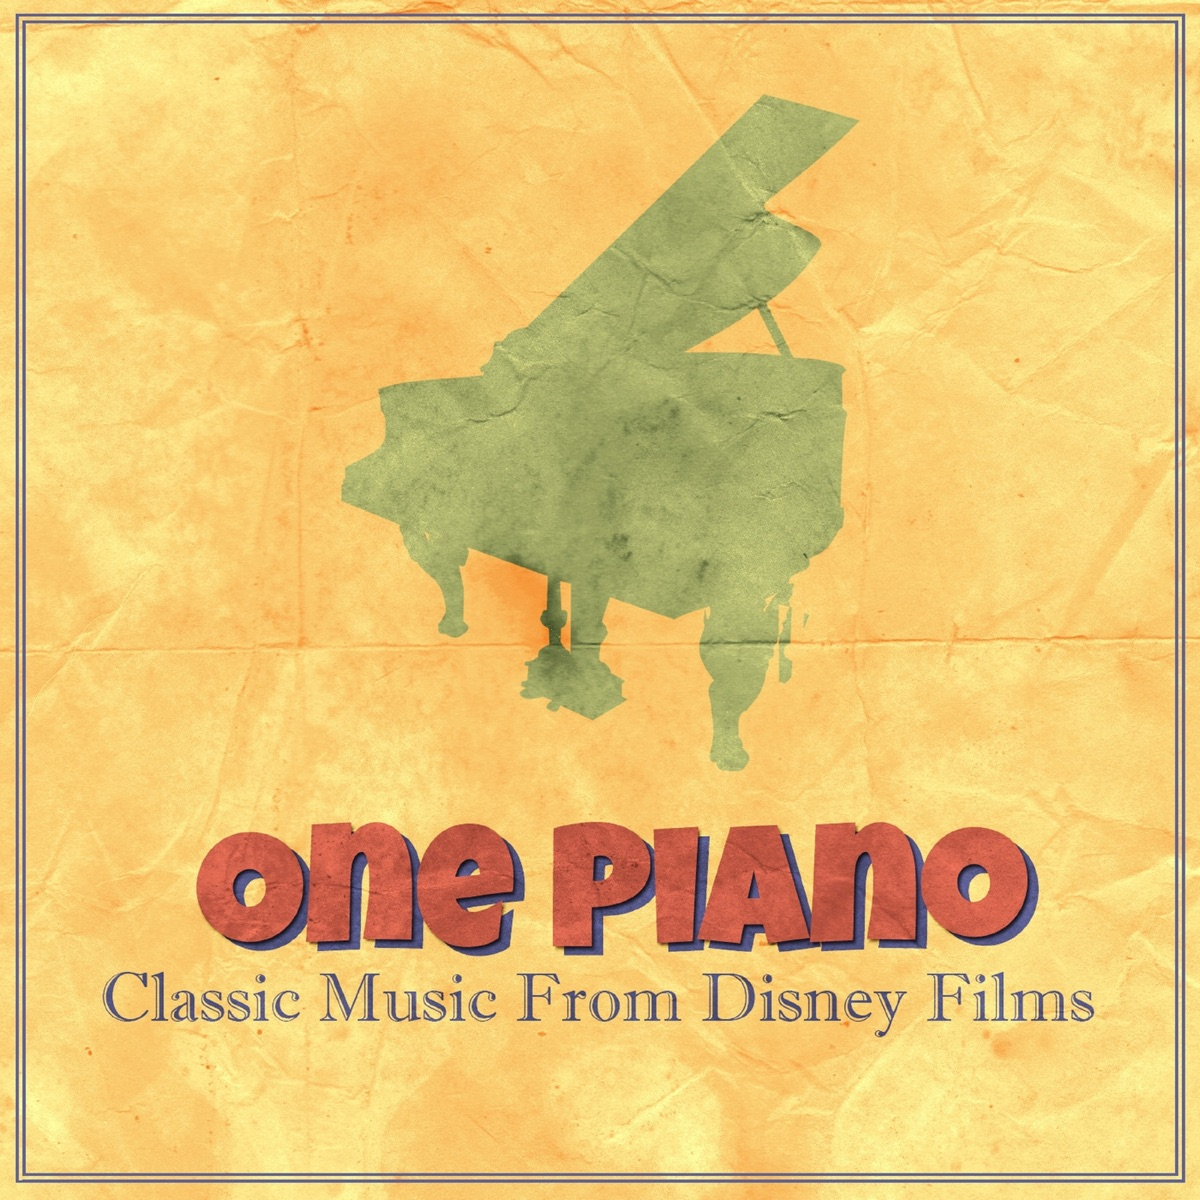 Classic Music From Disney Films One Piano CD cover